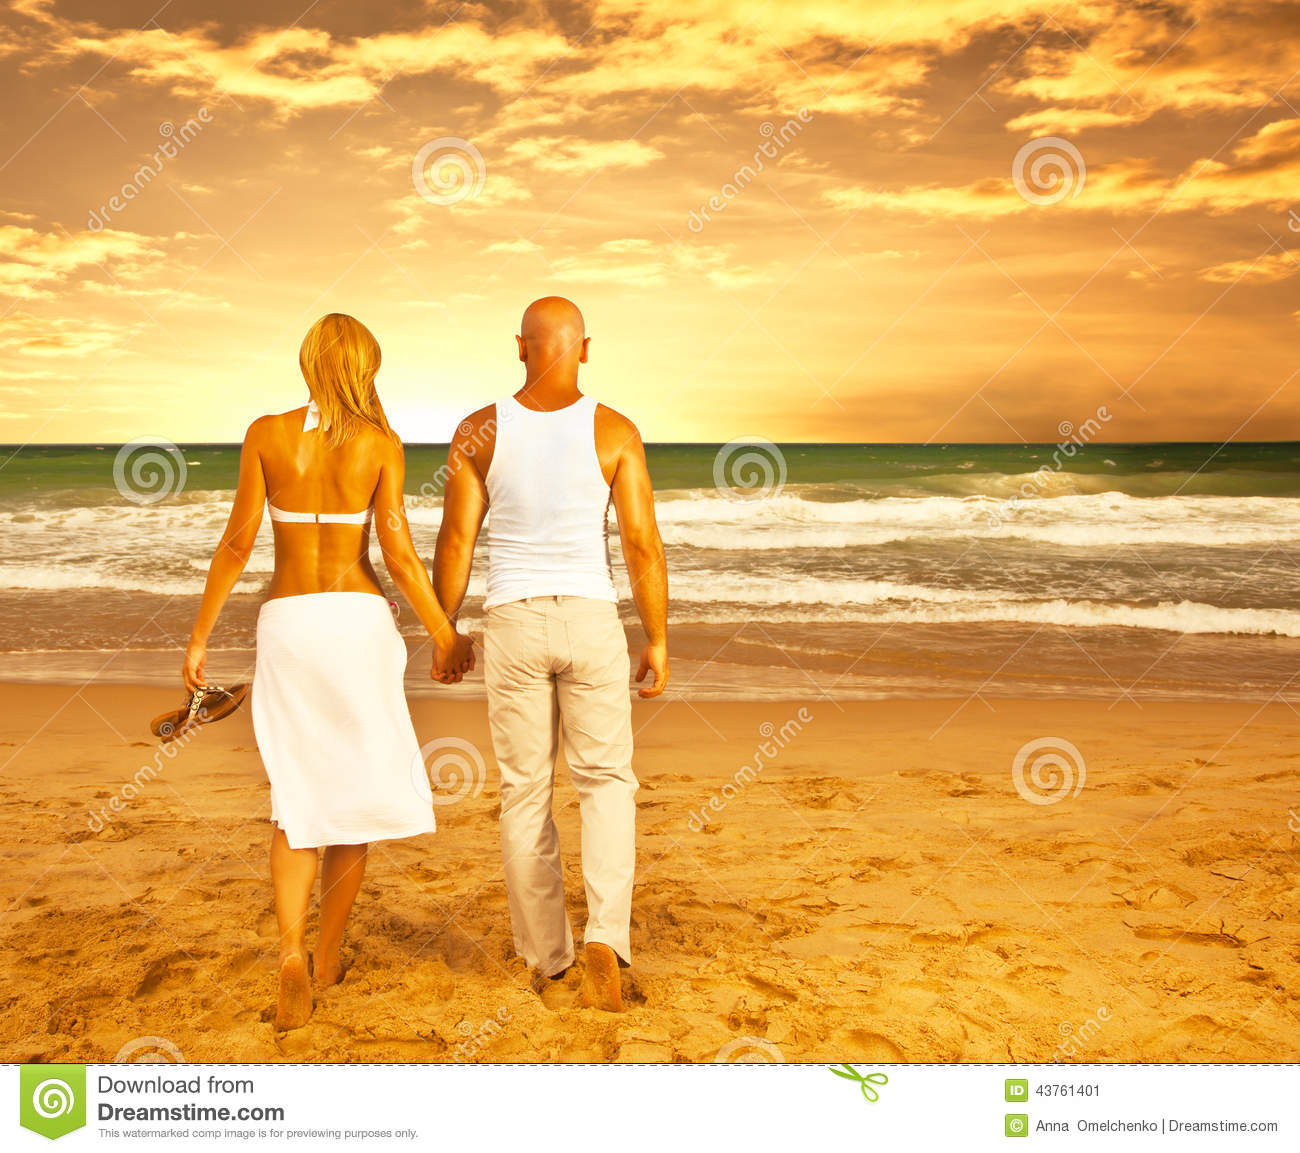 Happy Couple On The Beach Stock Image. Image Of Girlfriend